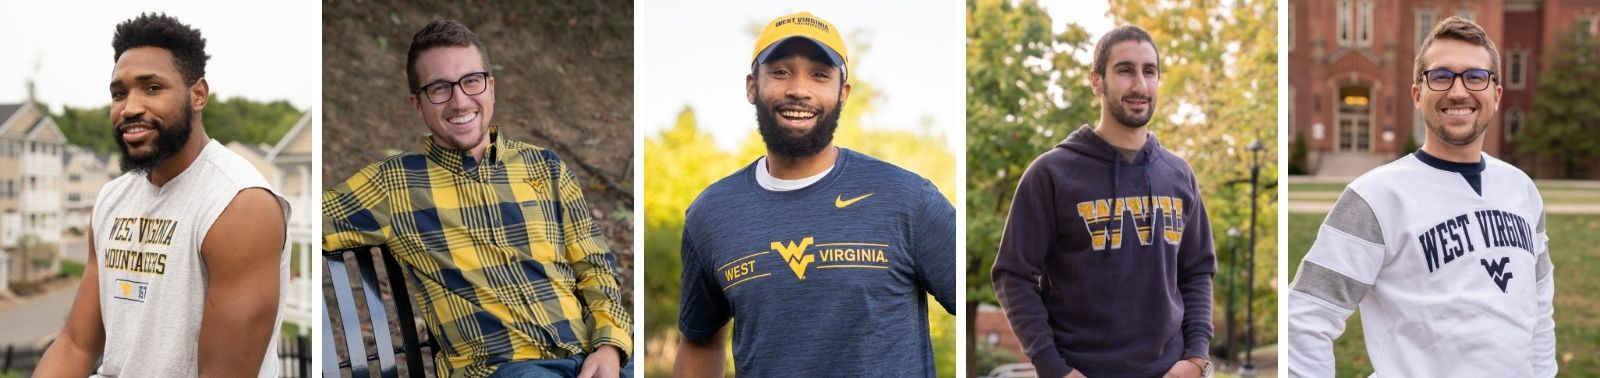 Men's WVU Clothing